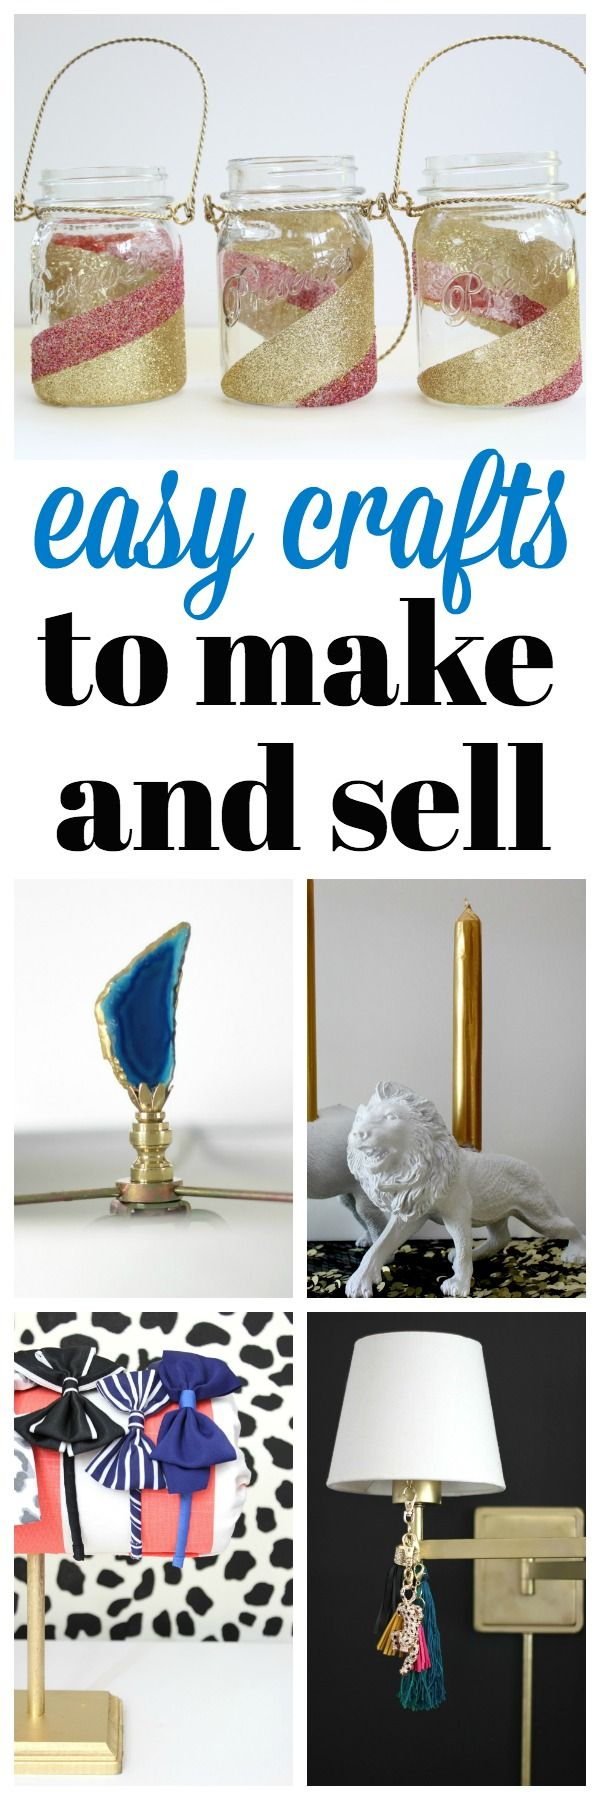 Easy Crafts to Make and Sell Christmas crafts to sell